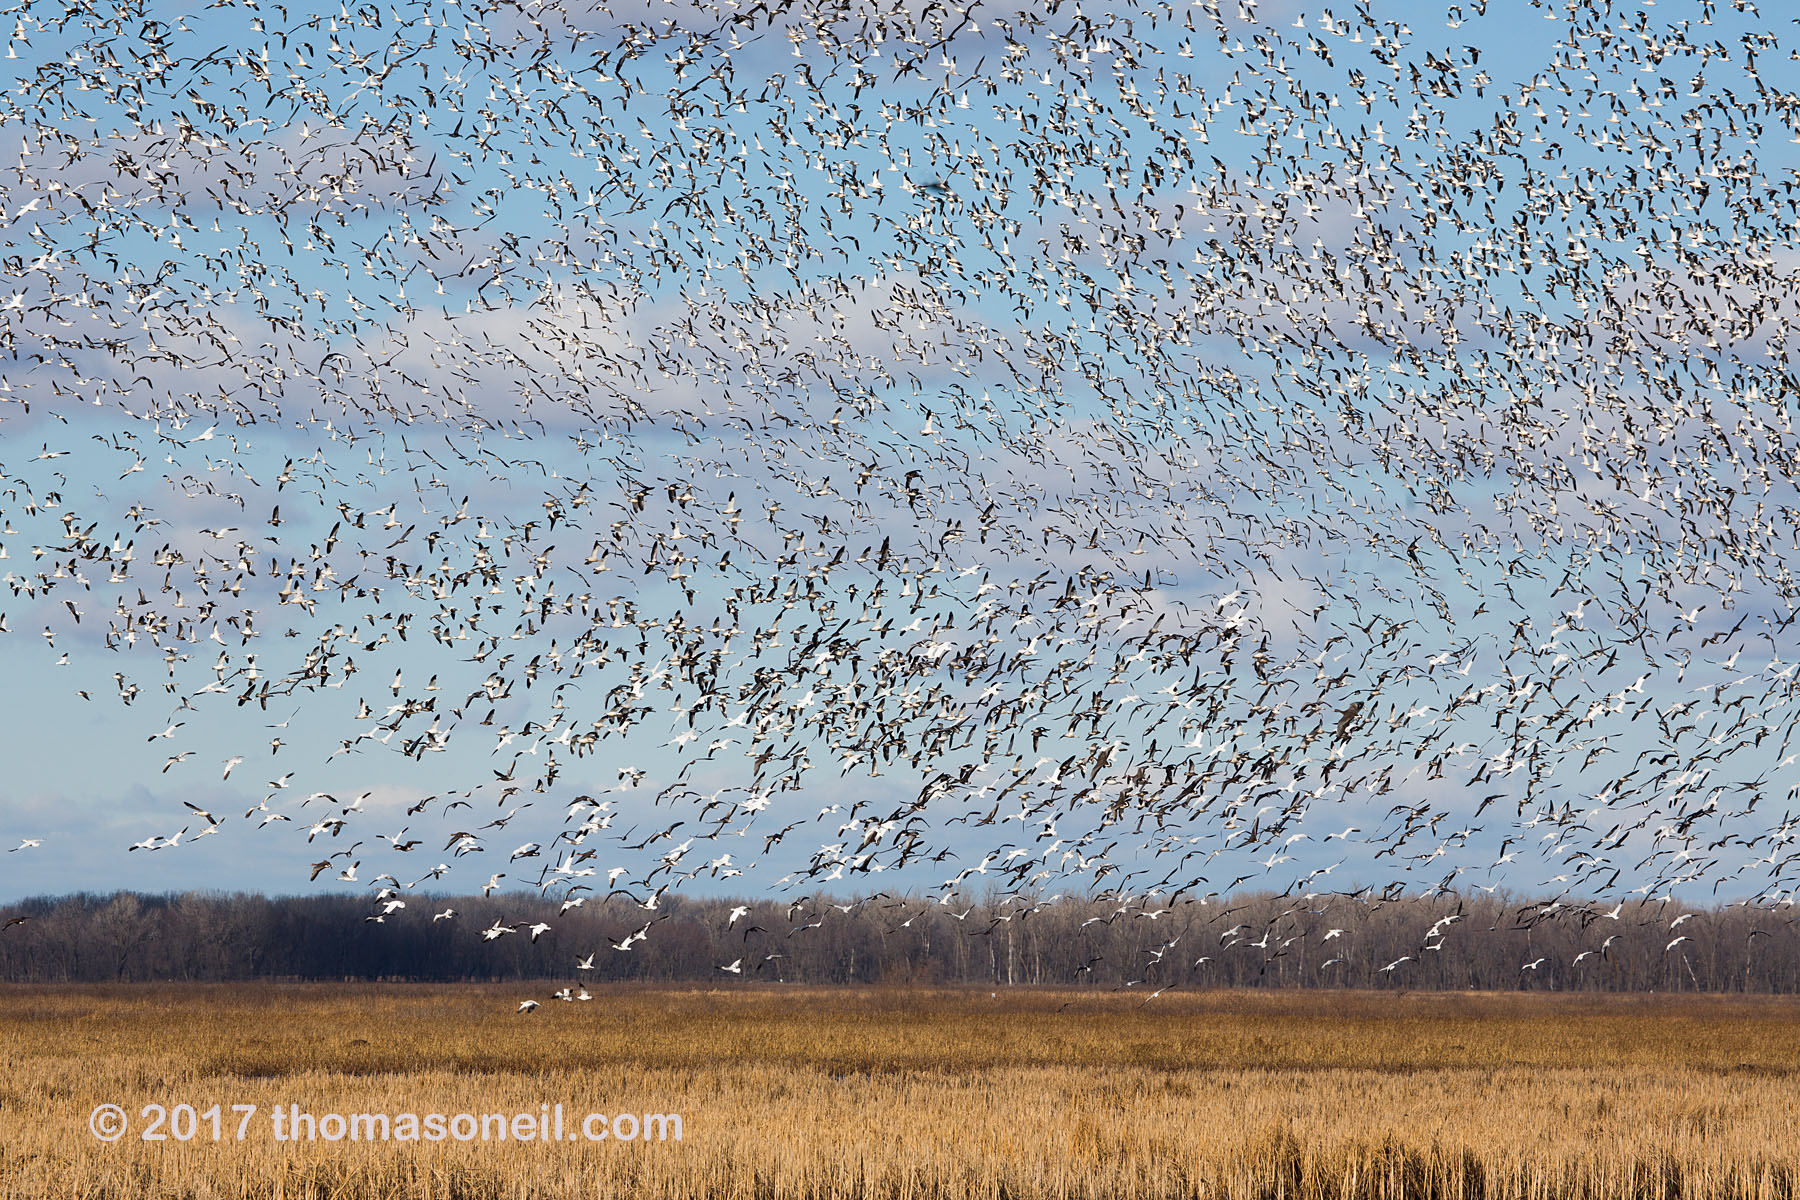 Snow geese, Loess Bluffs National Wildlife Refuge, Missouri, December 2017.  Click for next photo.